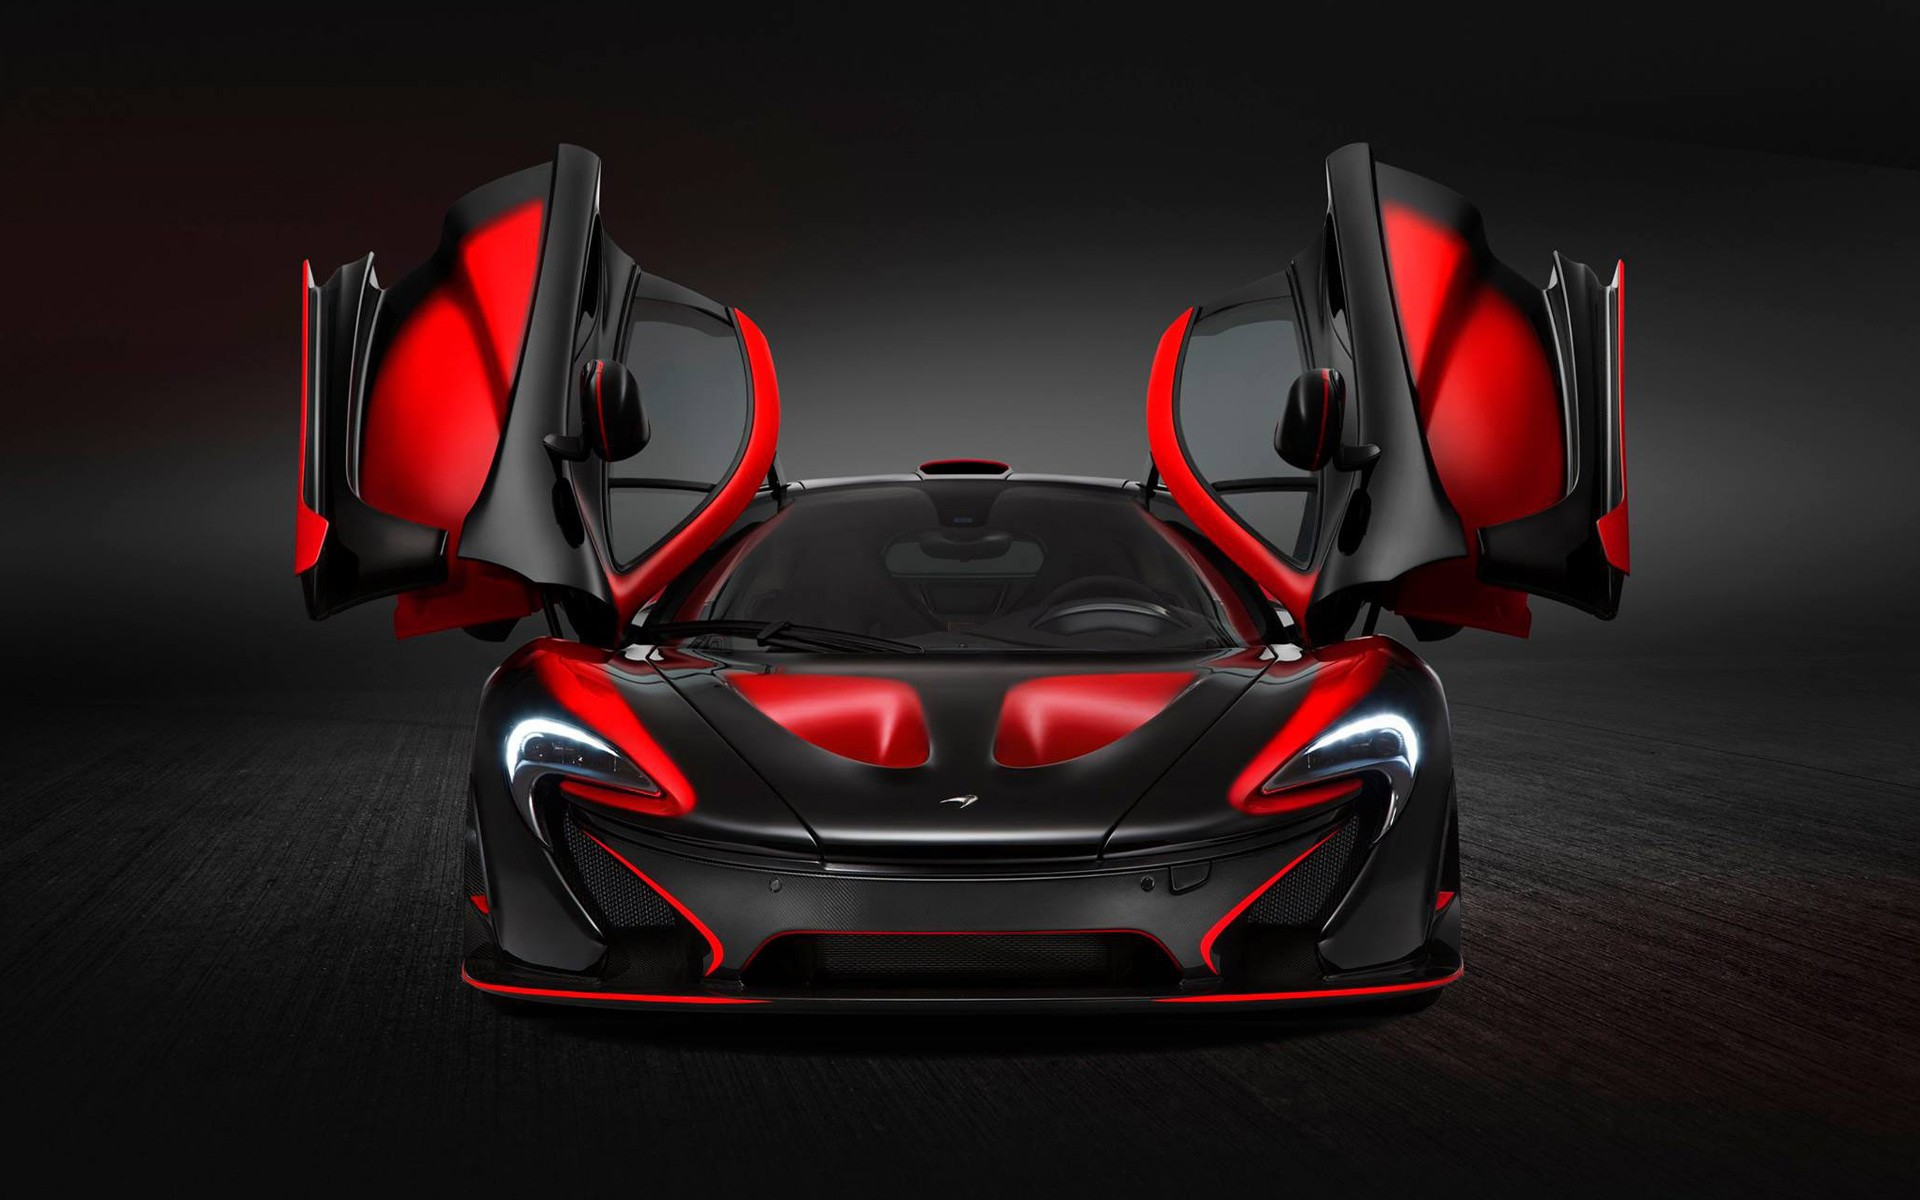 2015 Mclaren P1 Mclaren Special Operations Wallpaper Hd